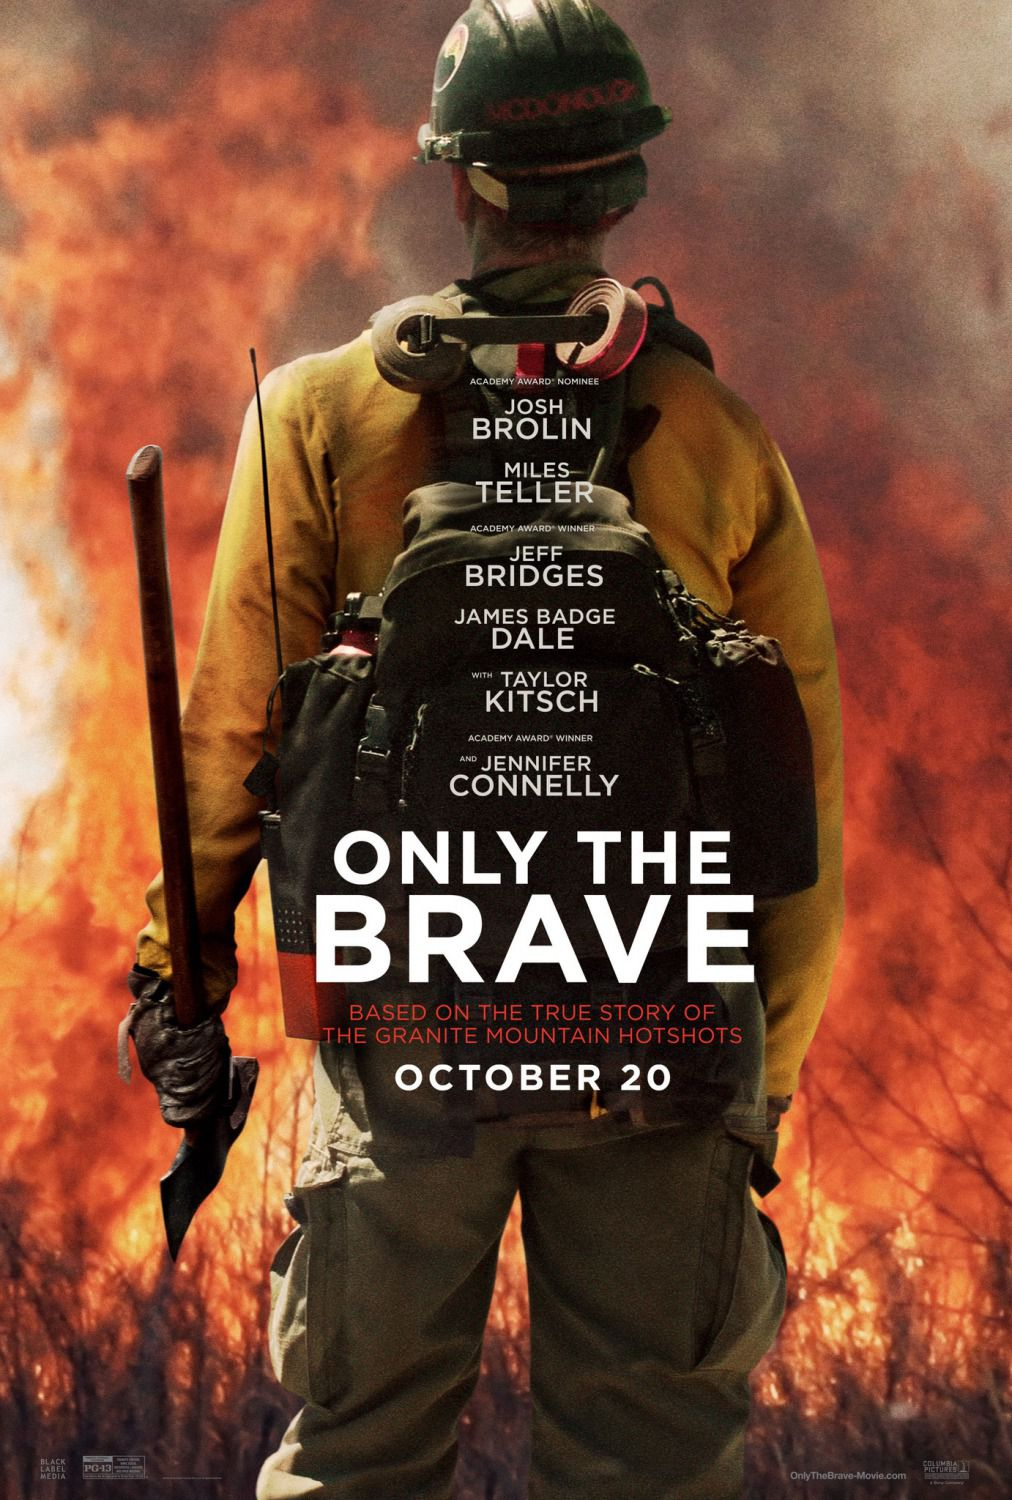 Only the Brave - Josh Brolin - Miles Teller - Jeff Bridges - James Badge Dale - film poster